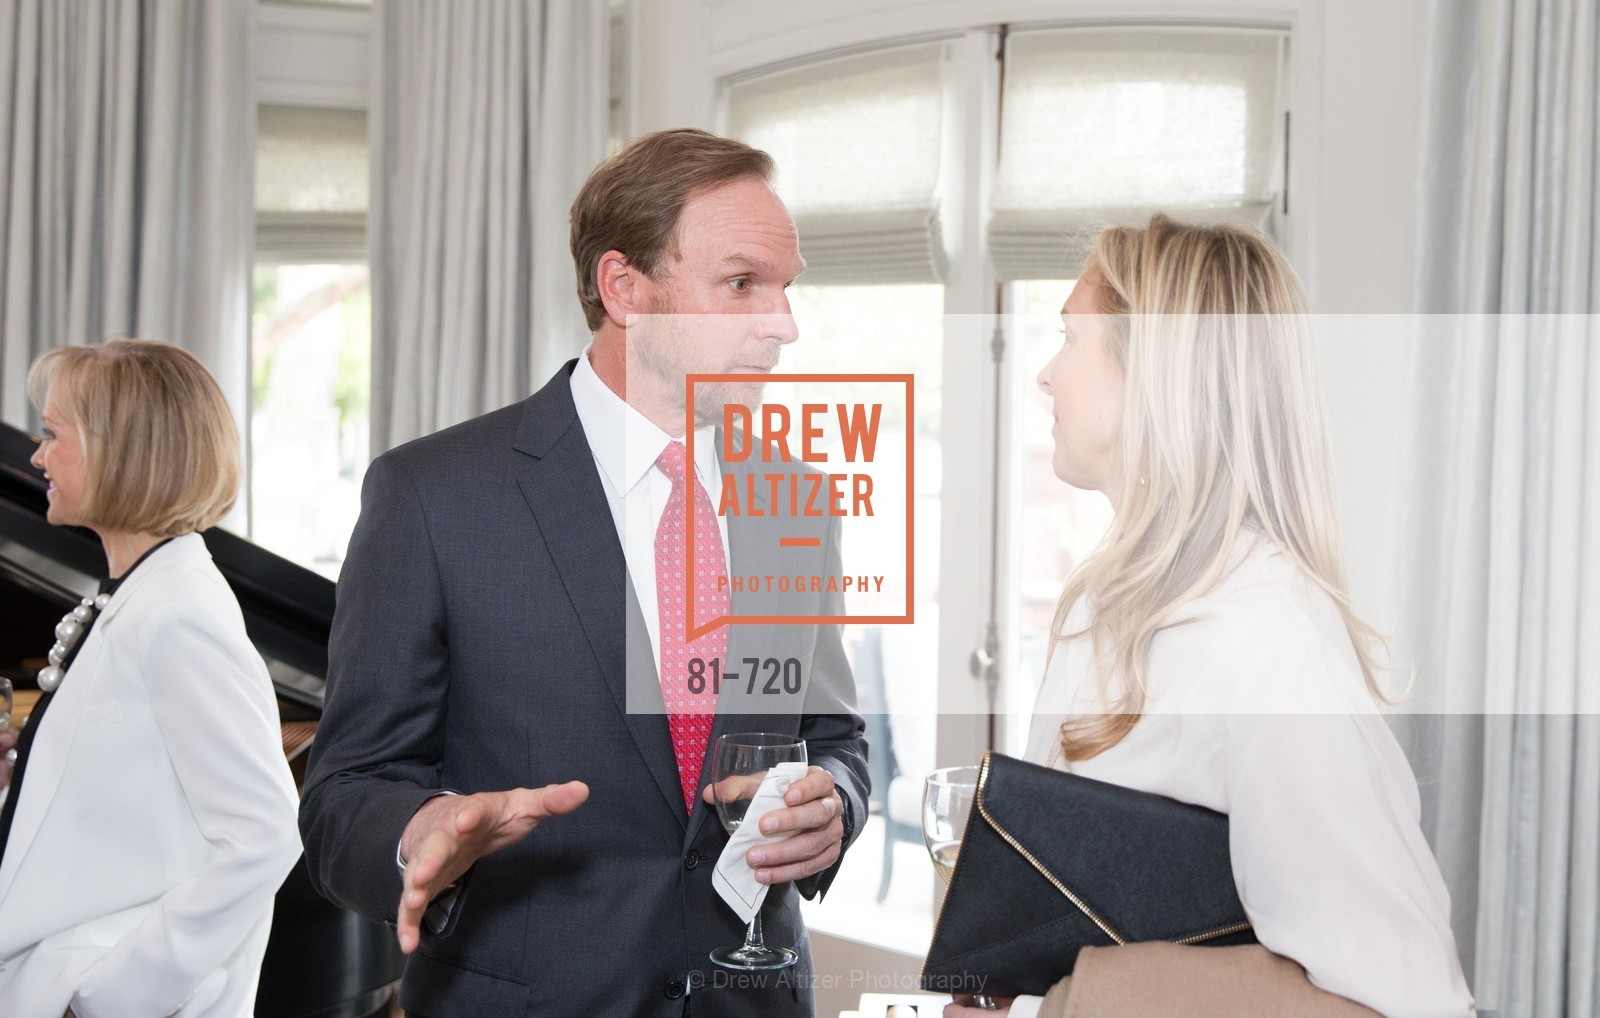 Shelby Bonnie, C MAGAZINE Editors Cocktail Party, US, May 12th, 2015,Drew Altizer, Drew Altizer Photography, full-service agency, private events, San Francisco photographer, photographer california